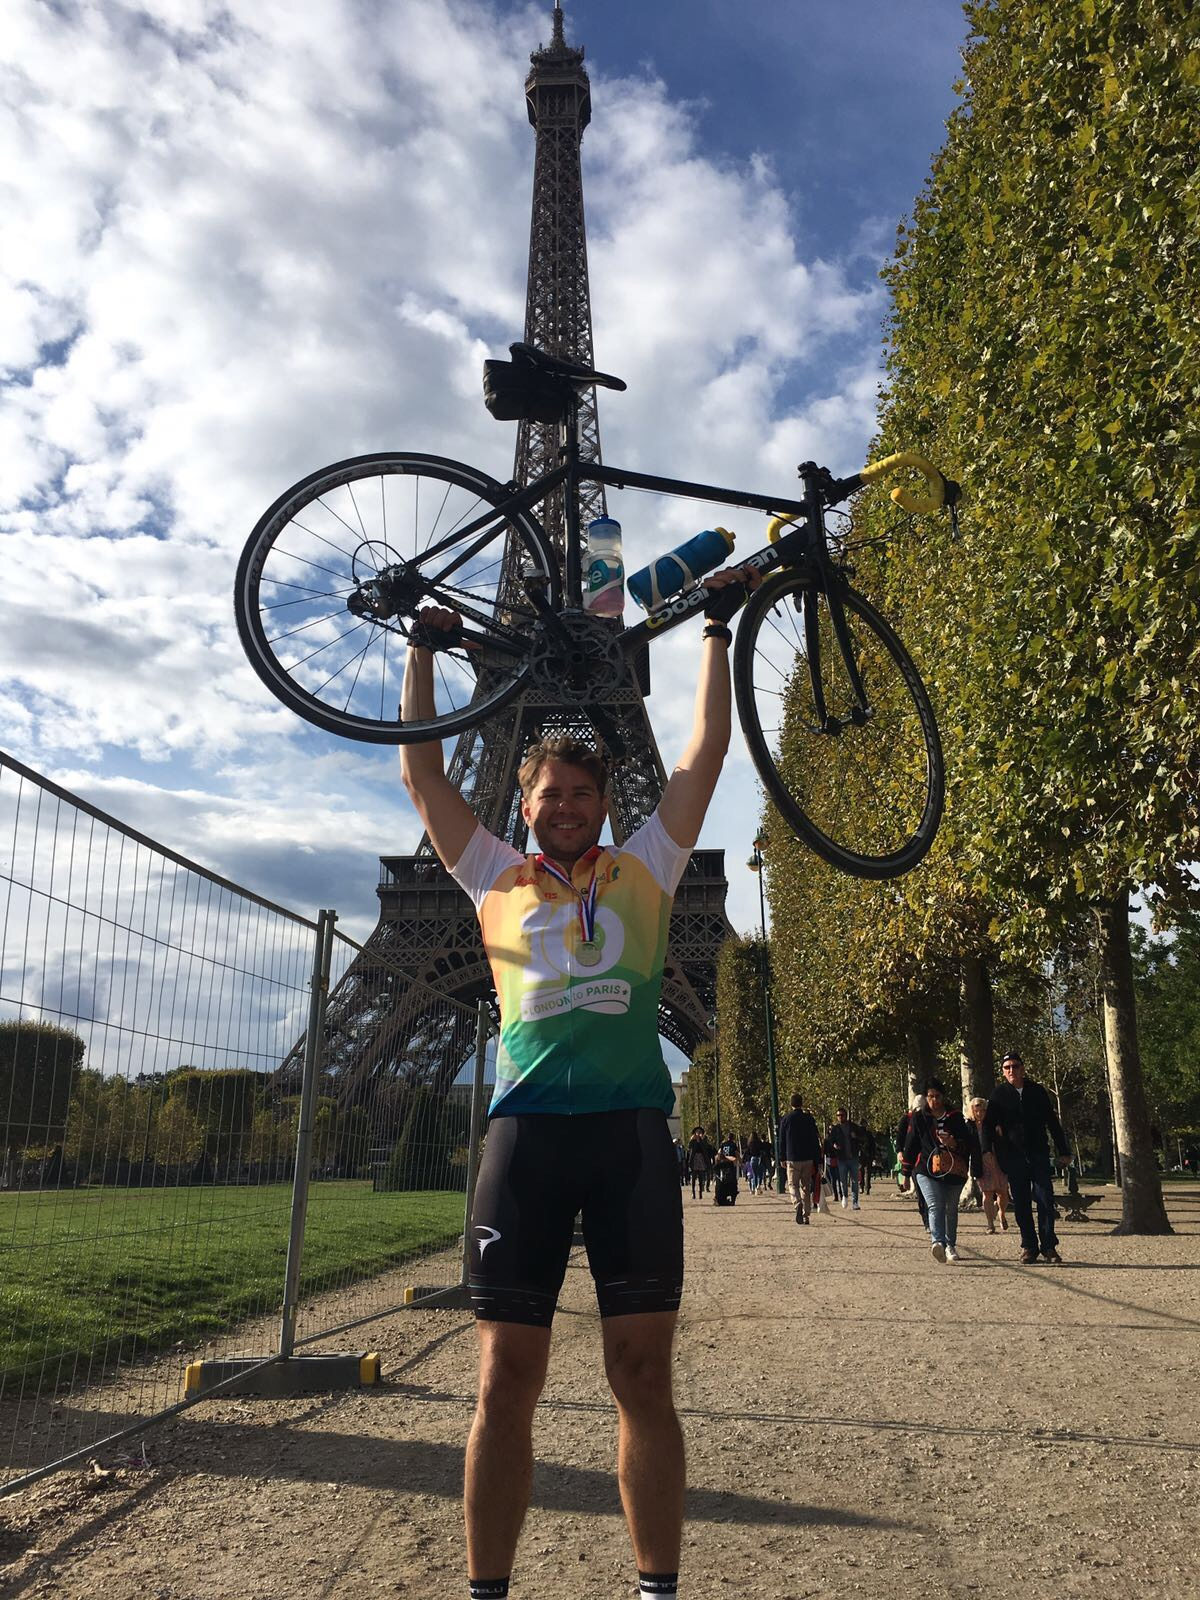 Johnny recently cycled to Paris (to escape?!)